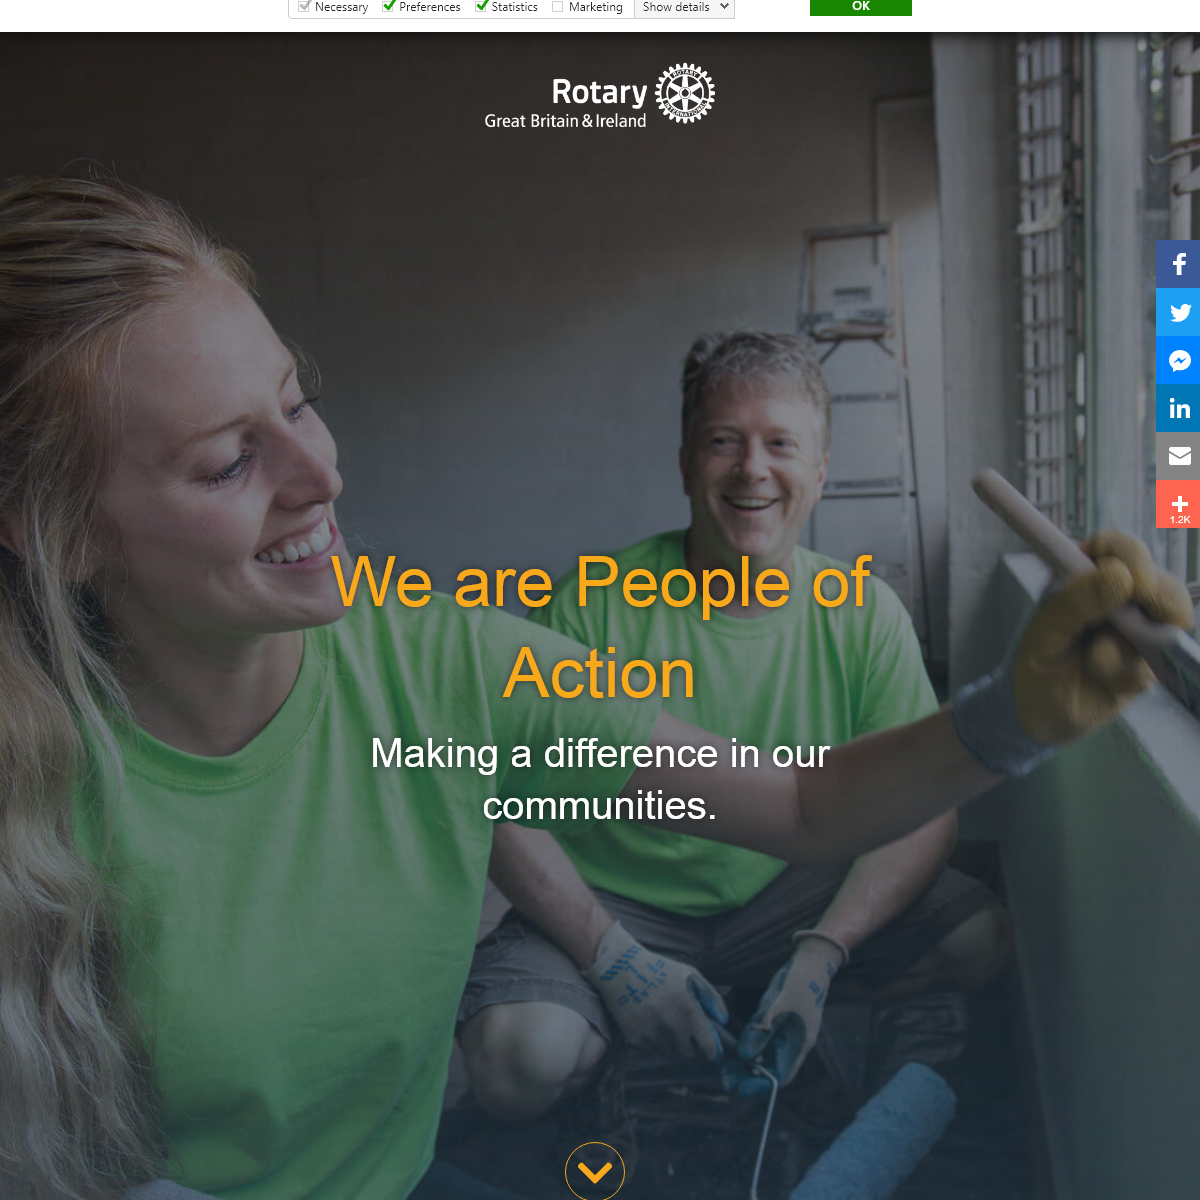 Rotary in Great Britain and Ireland - We are People of Action